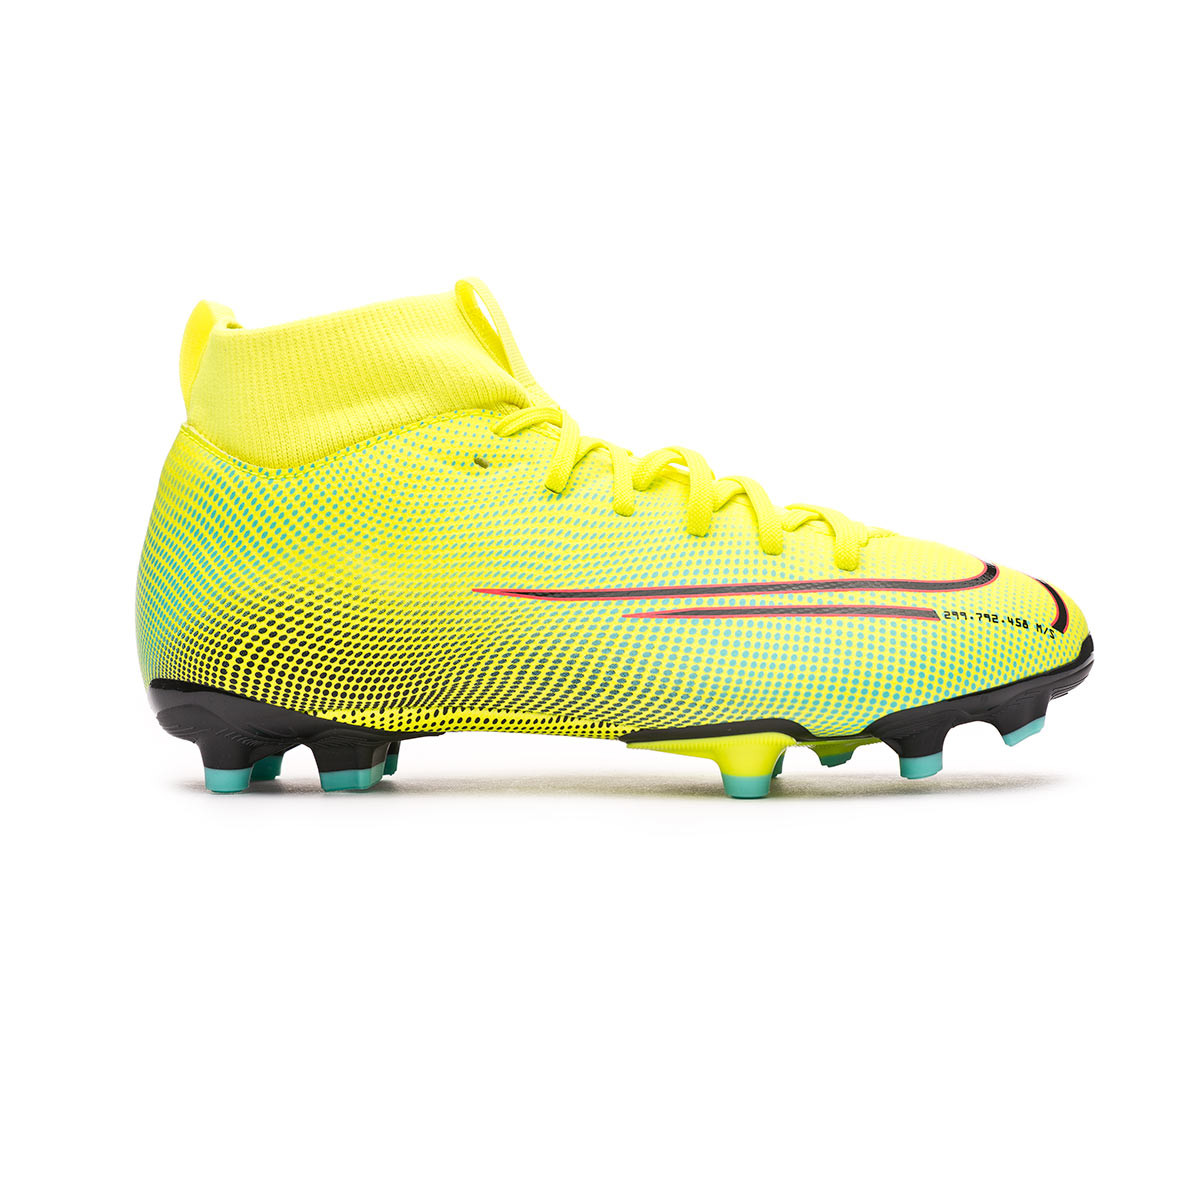 Chaussure de foot Nike Mercurial Superfly VII Academy MDS FG